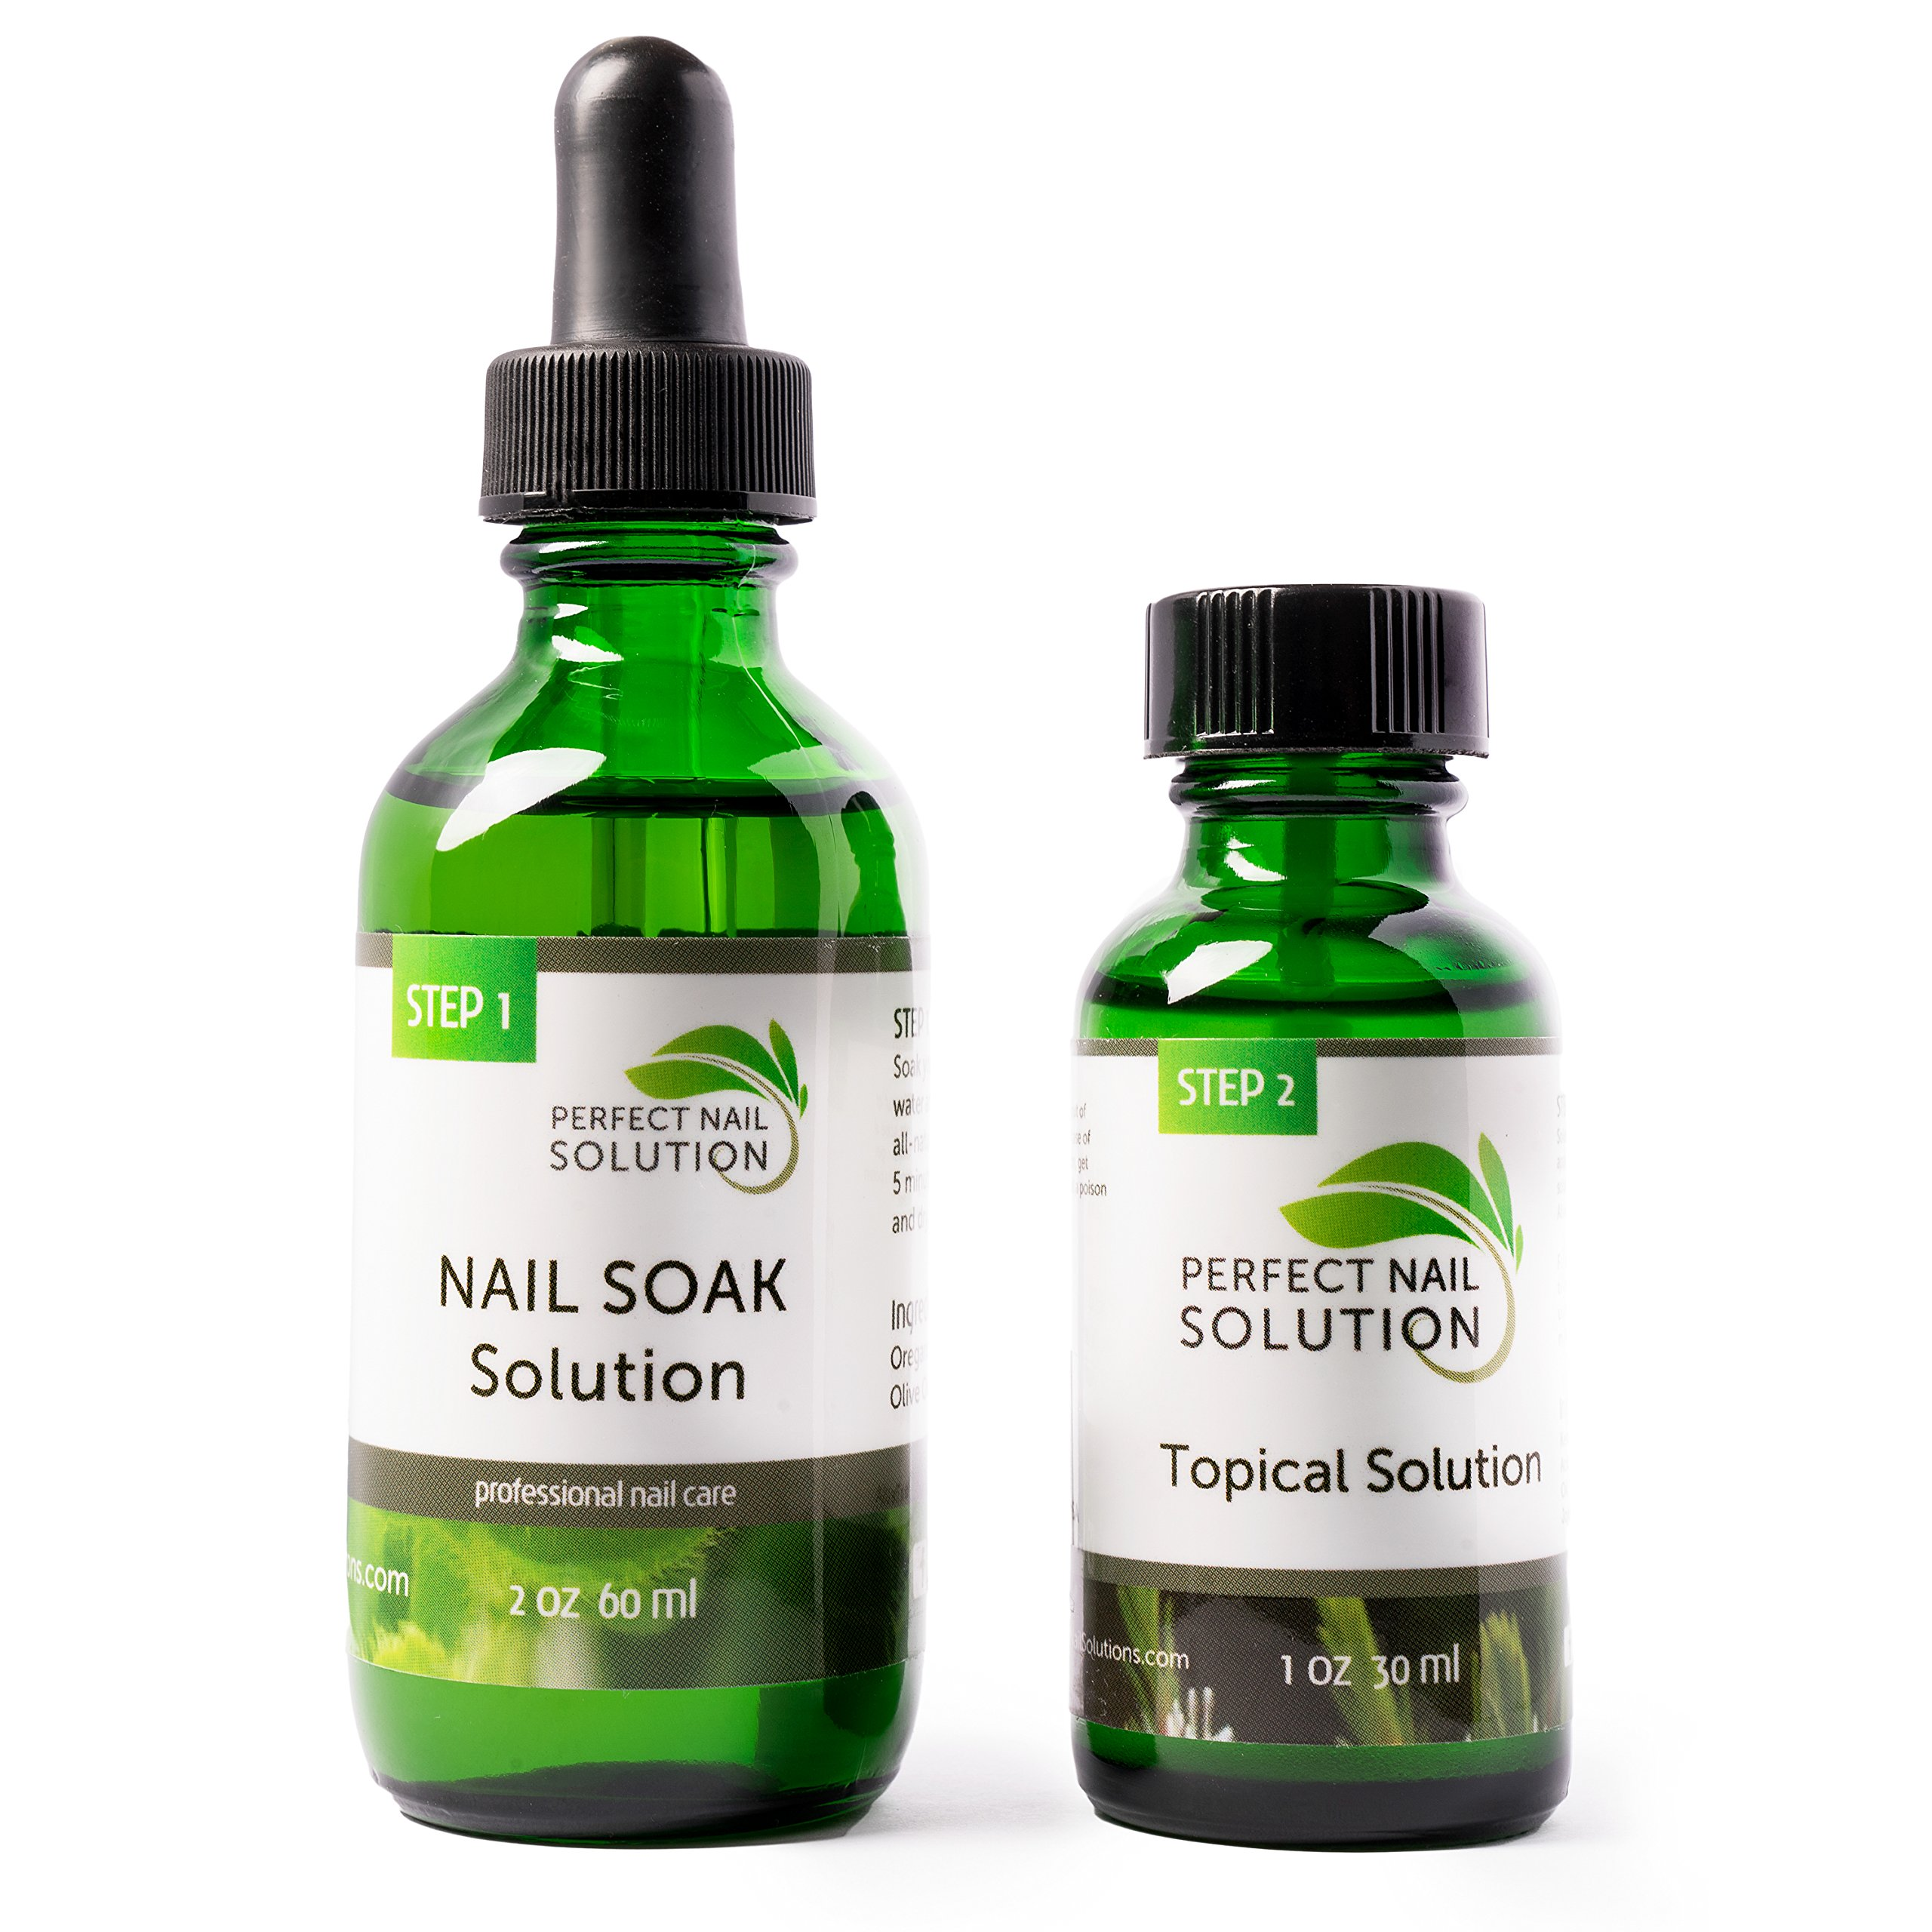 Toenail Fungus Treatment - Natural 2-Step Topical Anti-Fungal Solution with Oregano and Tea Tree Oil - Removes Yellow from Infected Finger & Toe Nails